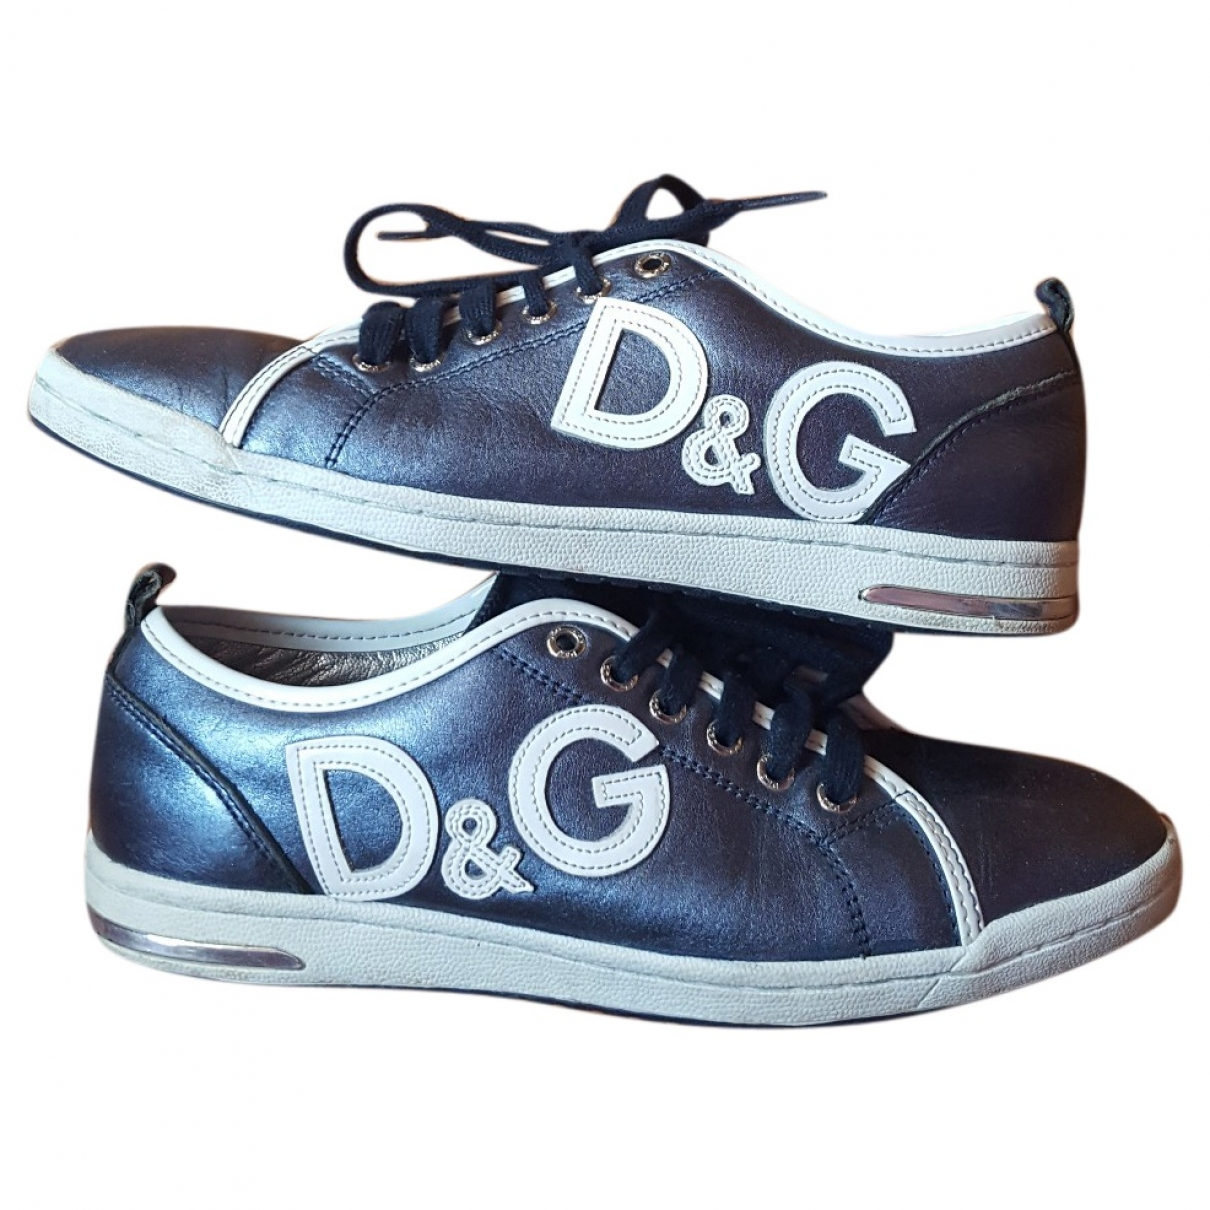 D&g \N Blue Leather Trainers for Women 38 EU